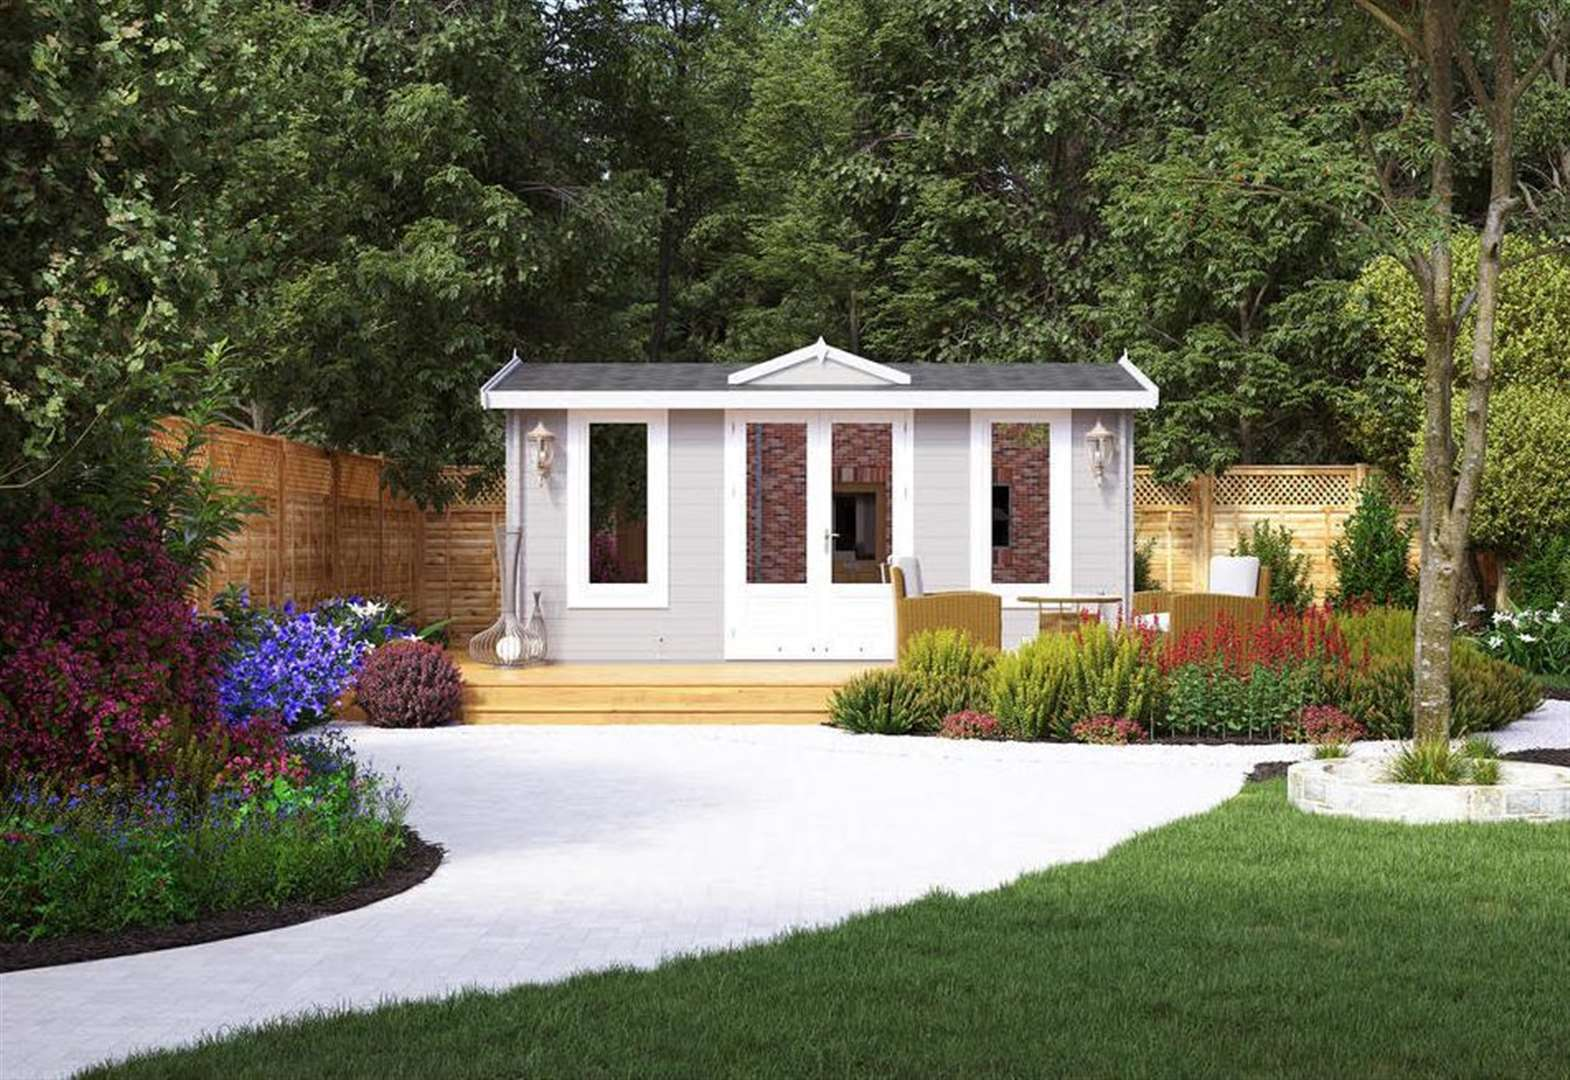 Bring the indoors outdoors with garden buildings